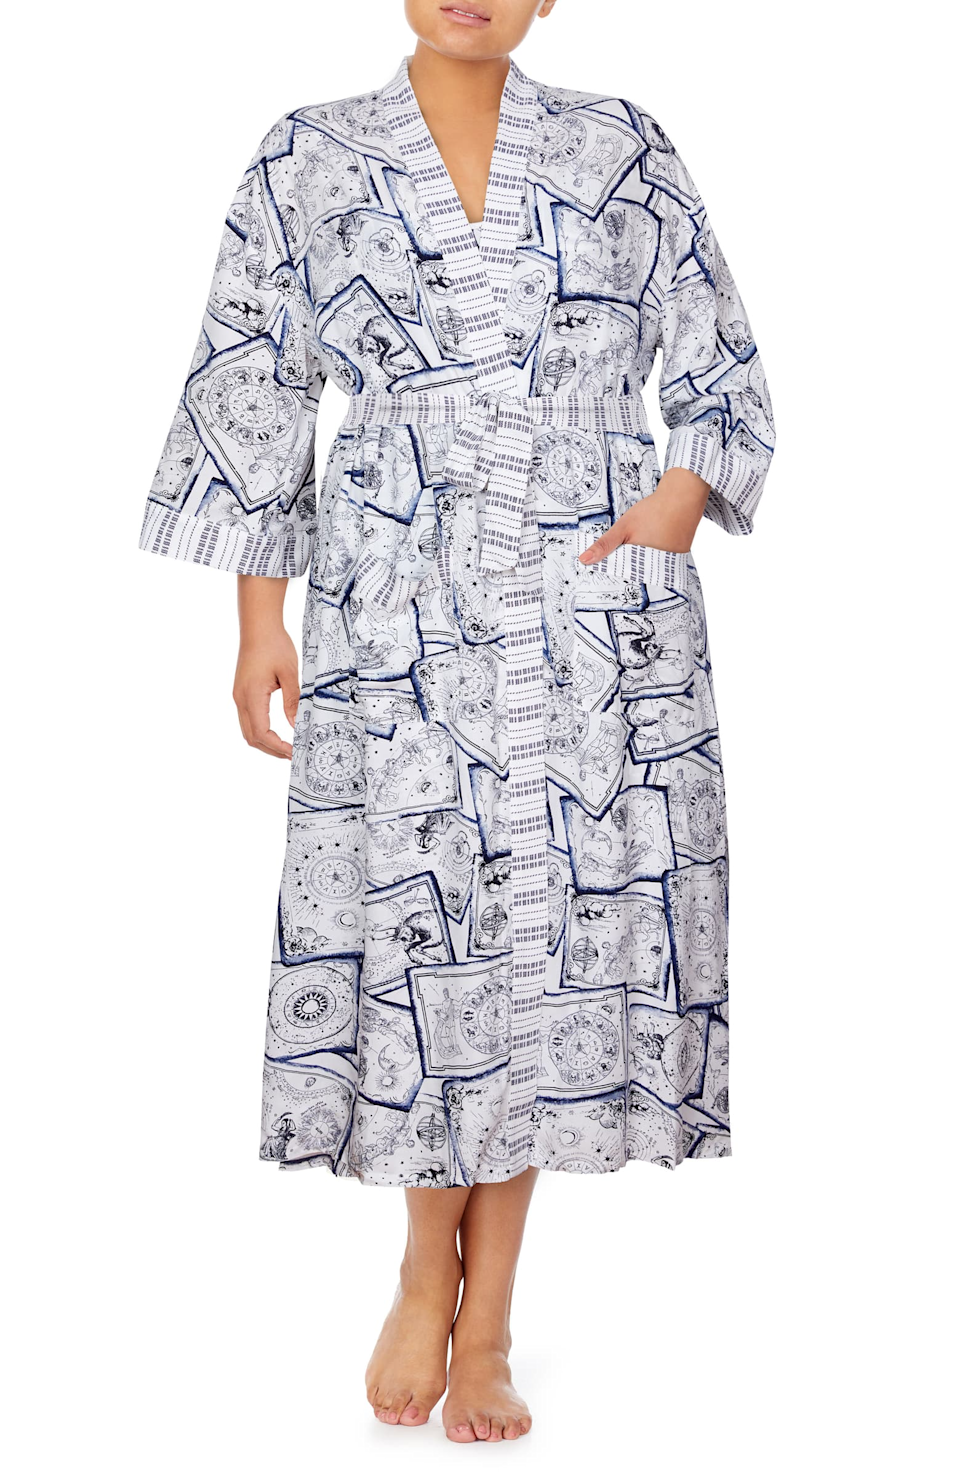 """<h2><a href=""""https://www.nordstrom.com/s/refinery29-print-maxi-robe/5597880"""" rel=""""nofollow noopener"""" target=""""_blank"""" data-ylk=""""slk:Refinery29 Print Maxi Robe"""" class=""""link rapid-noclick-resp"""">Refinery29 Print Maxi Robe</a></h2><br>To be very transparent, we do know how to make a pretty great robe. We designed this one in a fun horoscope inspired print and a lightweight fabric, making this the perfect option to transition from summer to fall. <br><br><br><br><strong>Refinery29</strong> Print Maxi Robe, $, available at <a href=""""https://go.skimresources.com/?id=30283X879131&url=https%3A%2F%2Fwww.nordstrom.com%2Fs%2Frefinery29-print-maxi-robe%2F5597880"""" rel=""""nofollow noopener"""" target=""""_blank"""" data-ylk=""""slk:Nordstrom"""" class=""""link rapid-noclick-resp"""">Nordstrom</a>"""